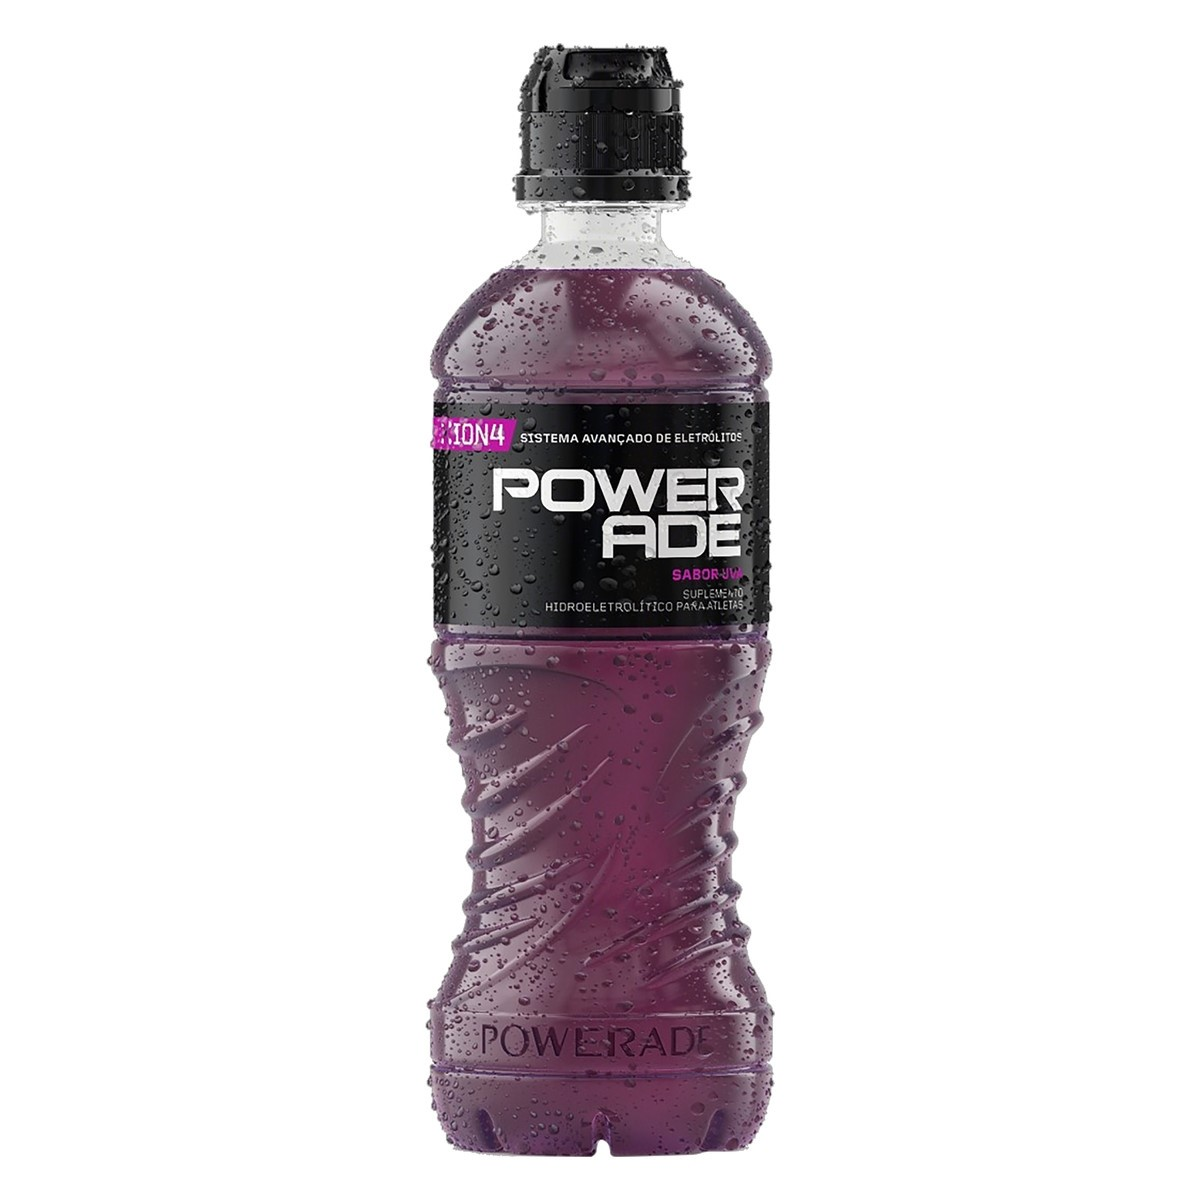 ISOTÔNICO i9 POWERADE UVA 500 ML